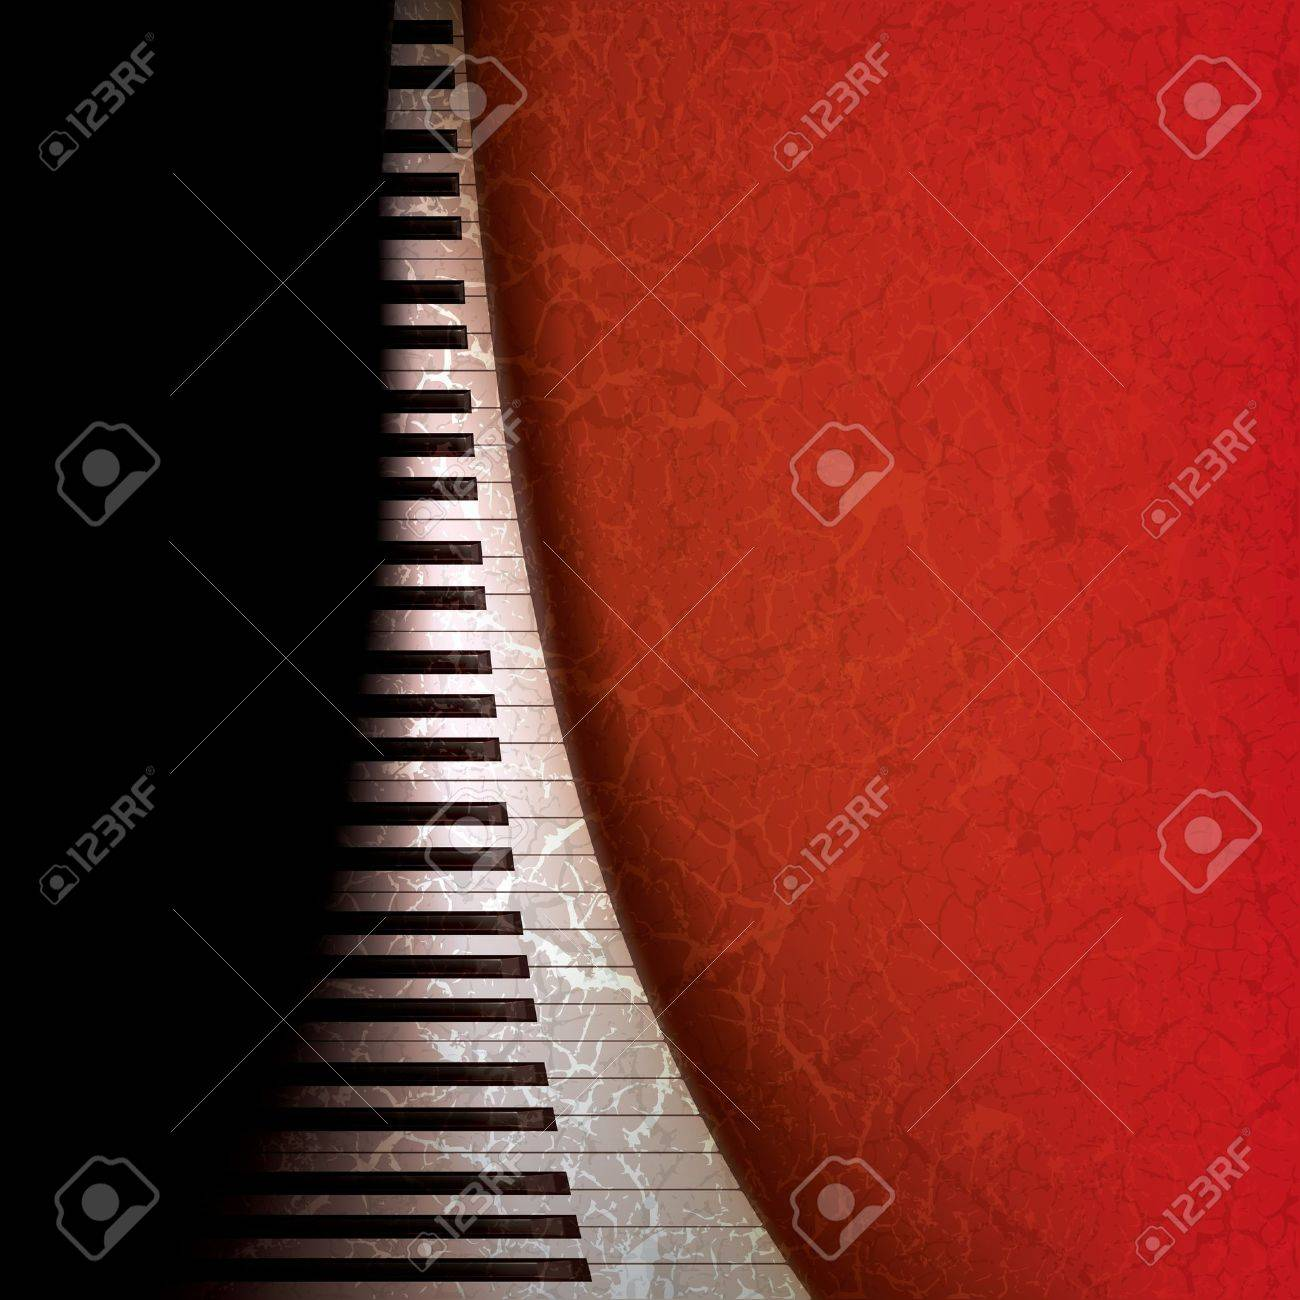 abstract grunge music background with piano keys on red Stock Vector - 9647092